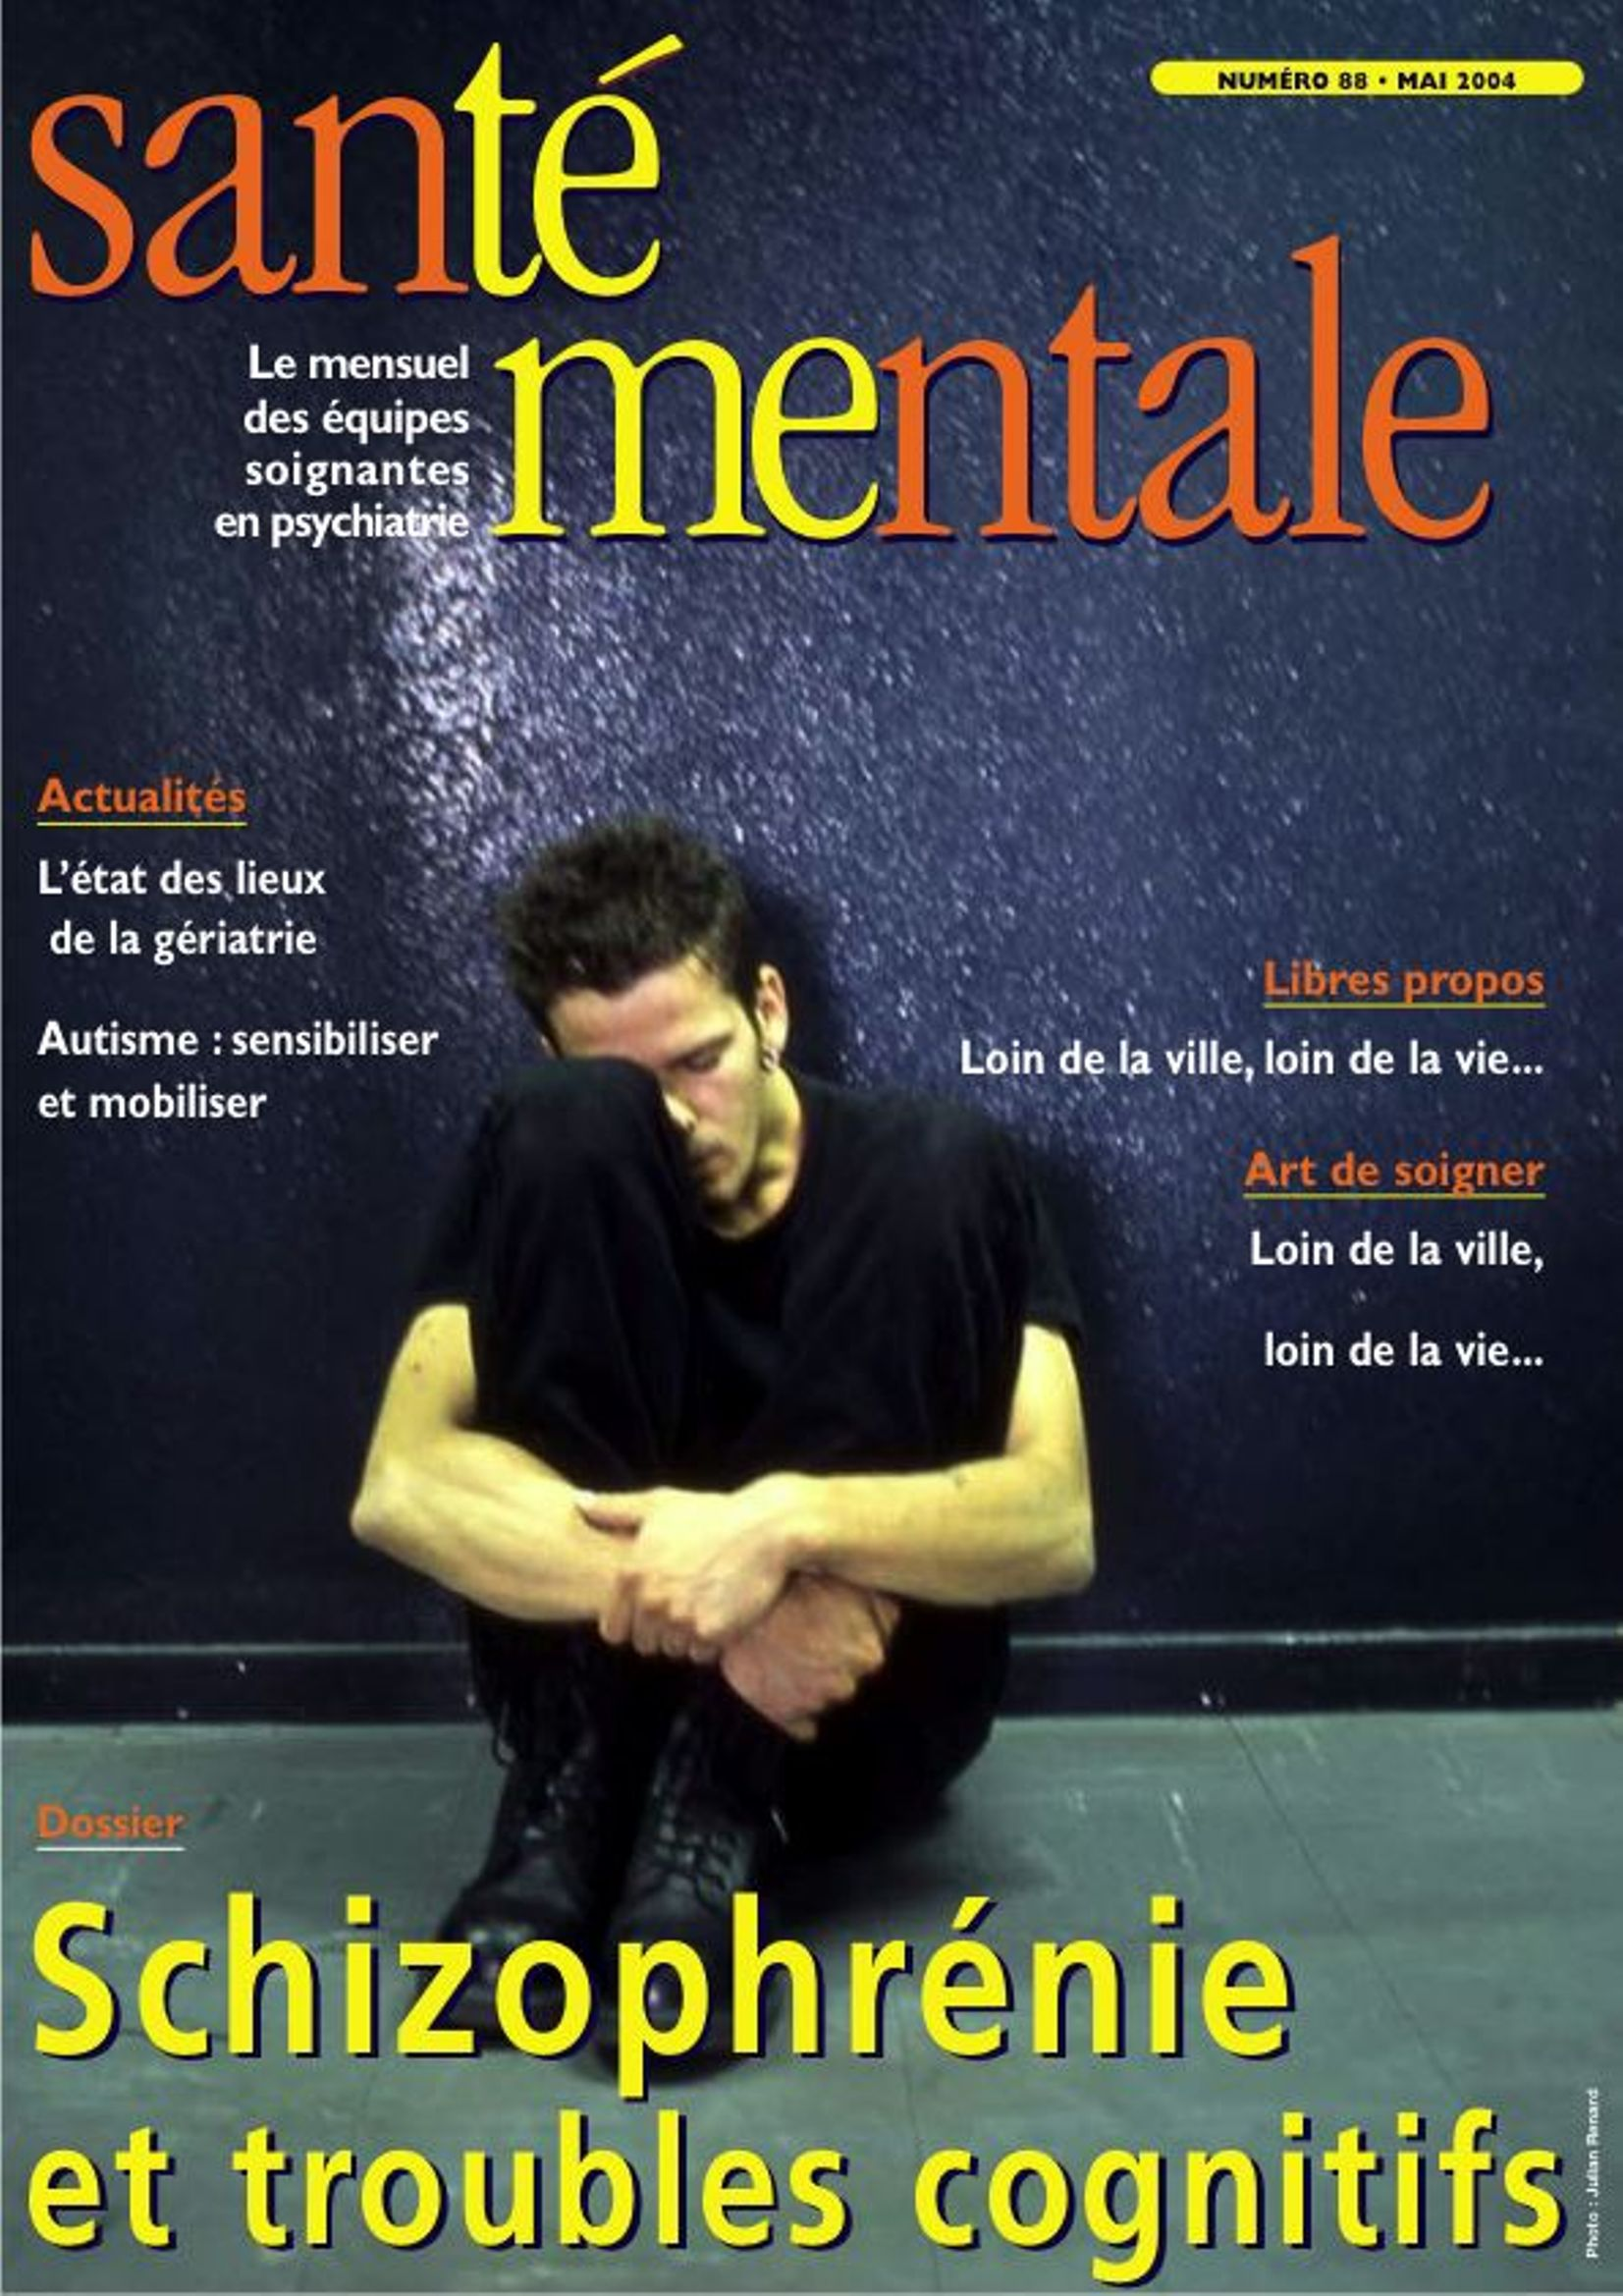 Couverture N°88 mai 2004